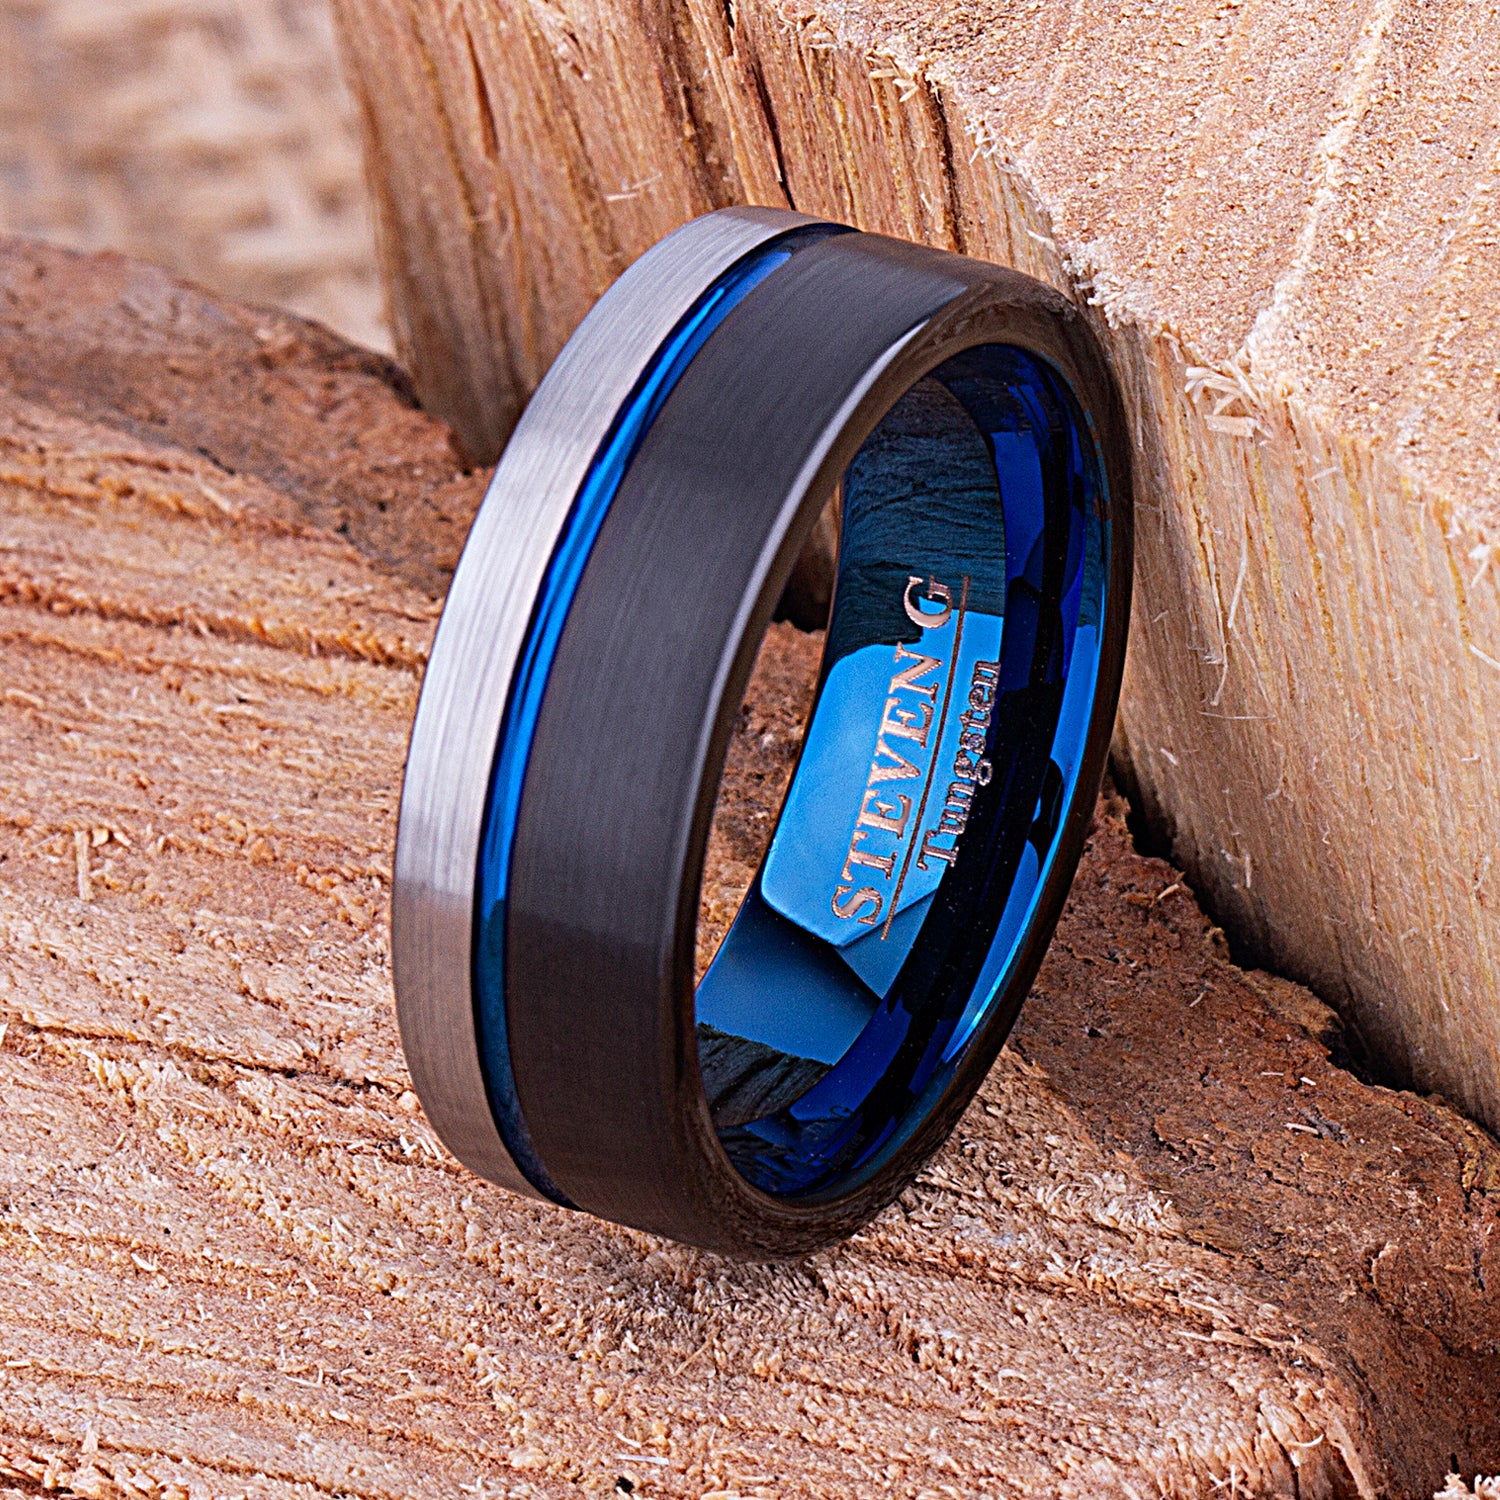 Black and Blue Tungsten Band 8mm - TCR106 black and blue men's wedding or engagement band or promise ring for him